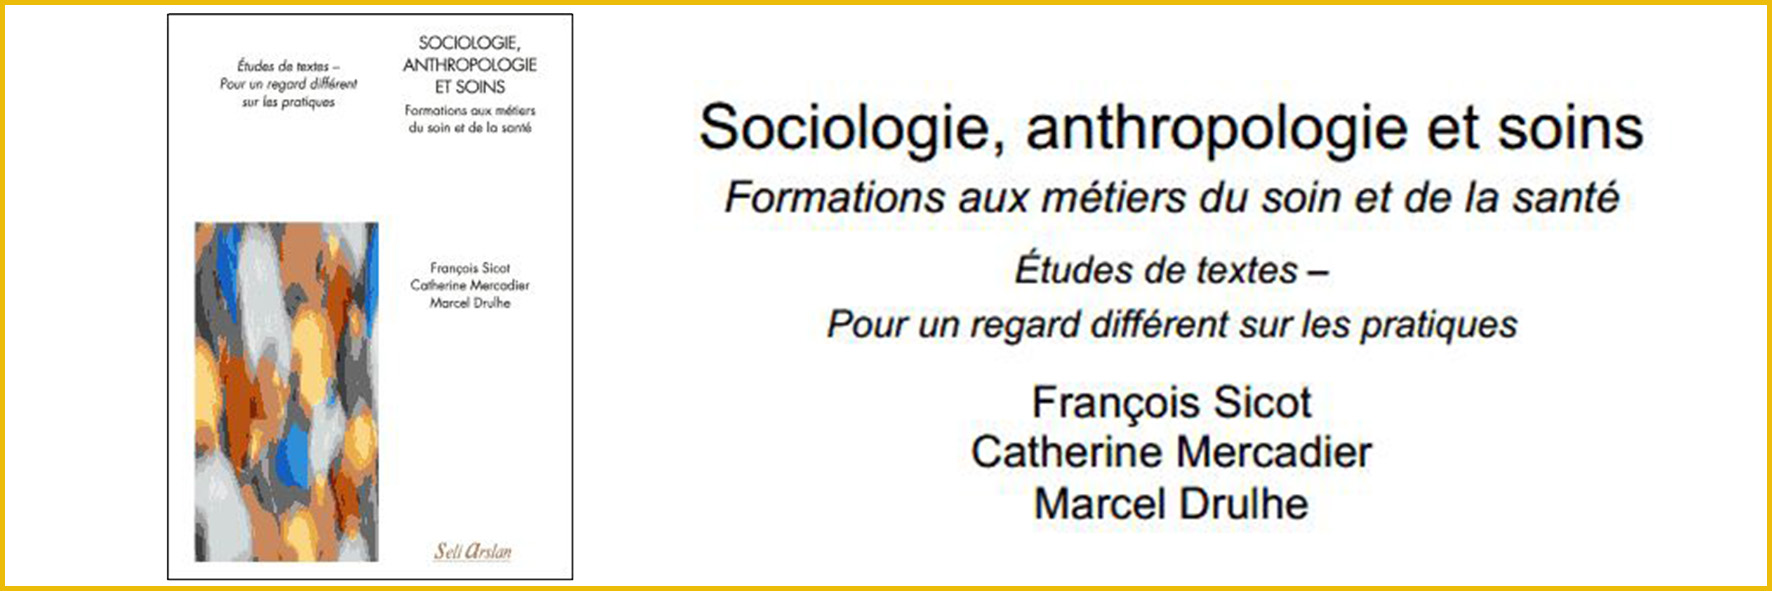 Manuel Anthropologie Sociologie